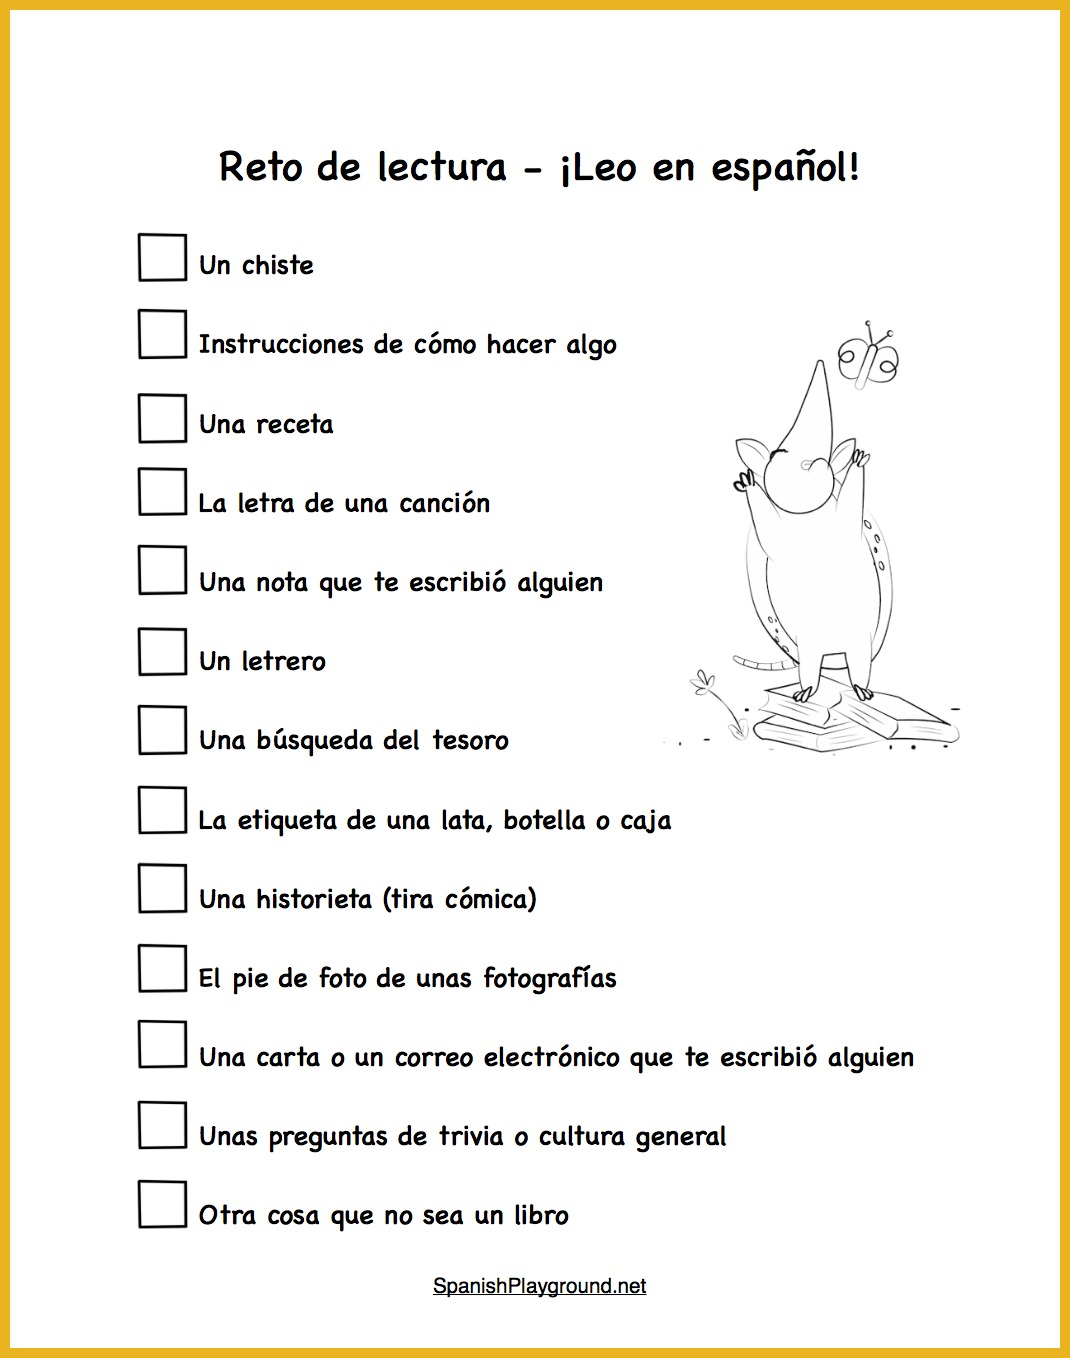 A reading challenge to encourage kids to practice reading in Spanish.